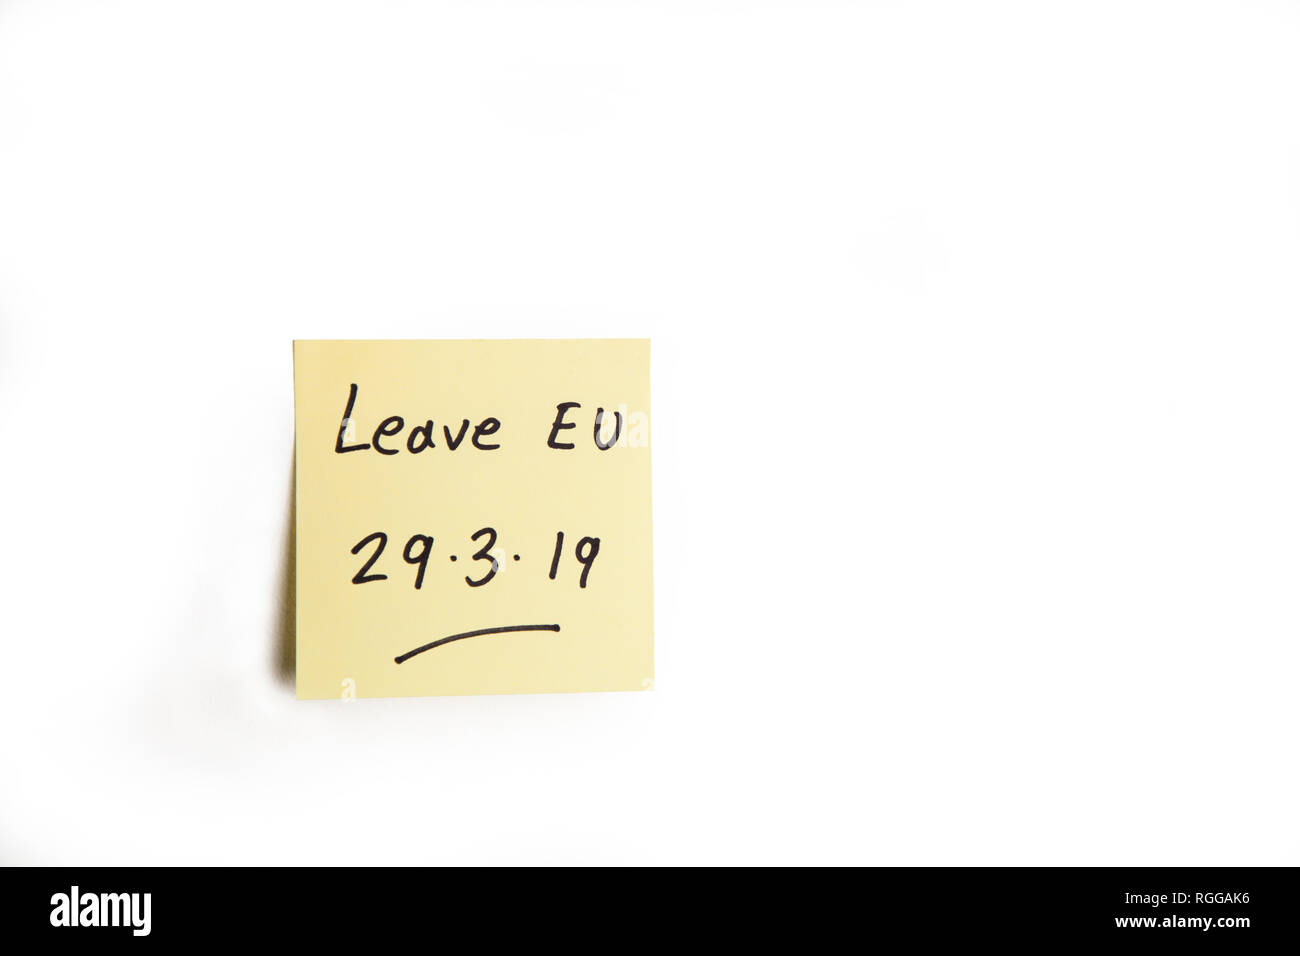 Yellow sticky note reminding UK to Leave the EU on 29th March 2019 - Stock Image